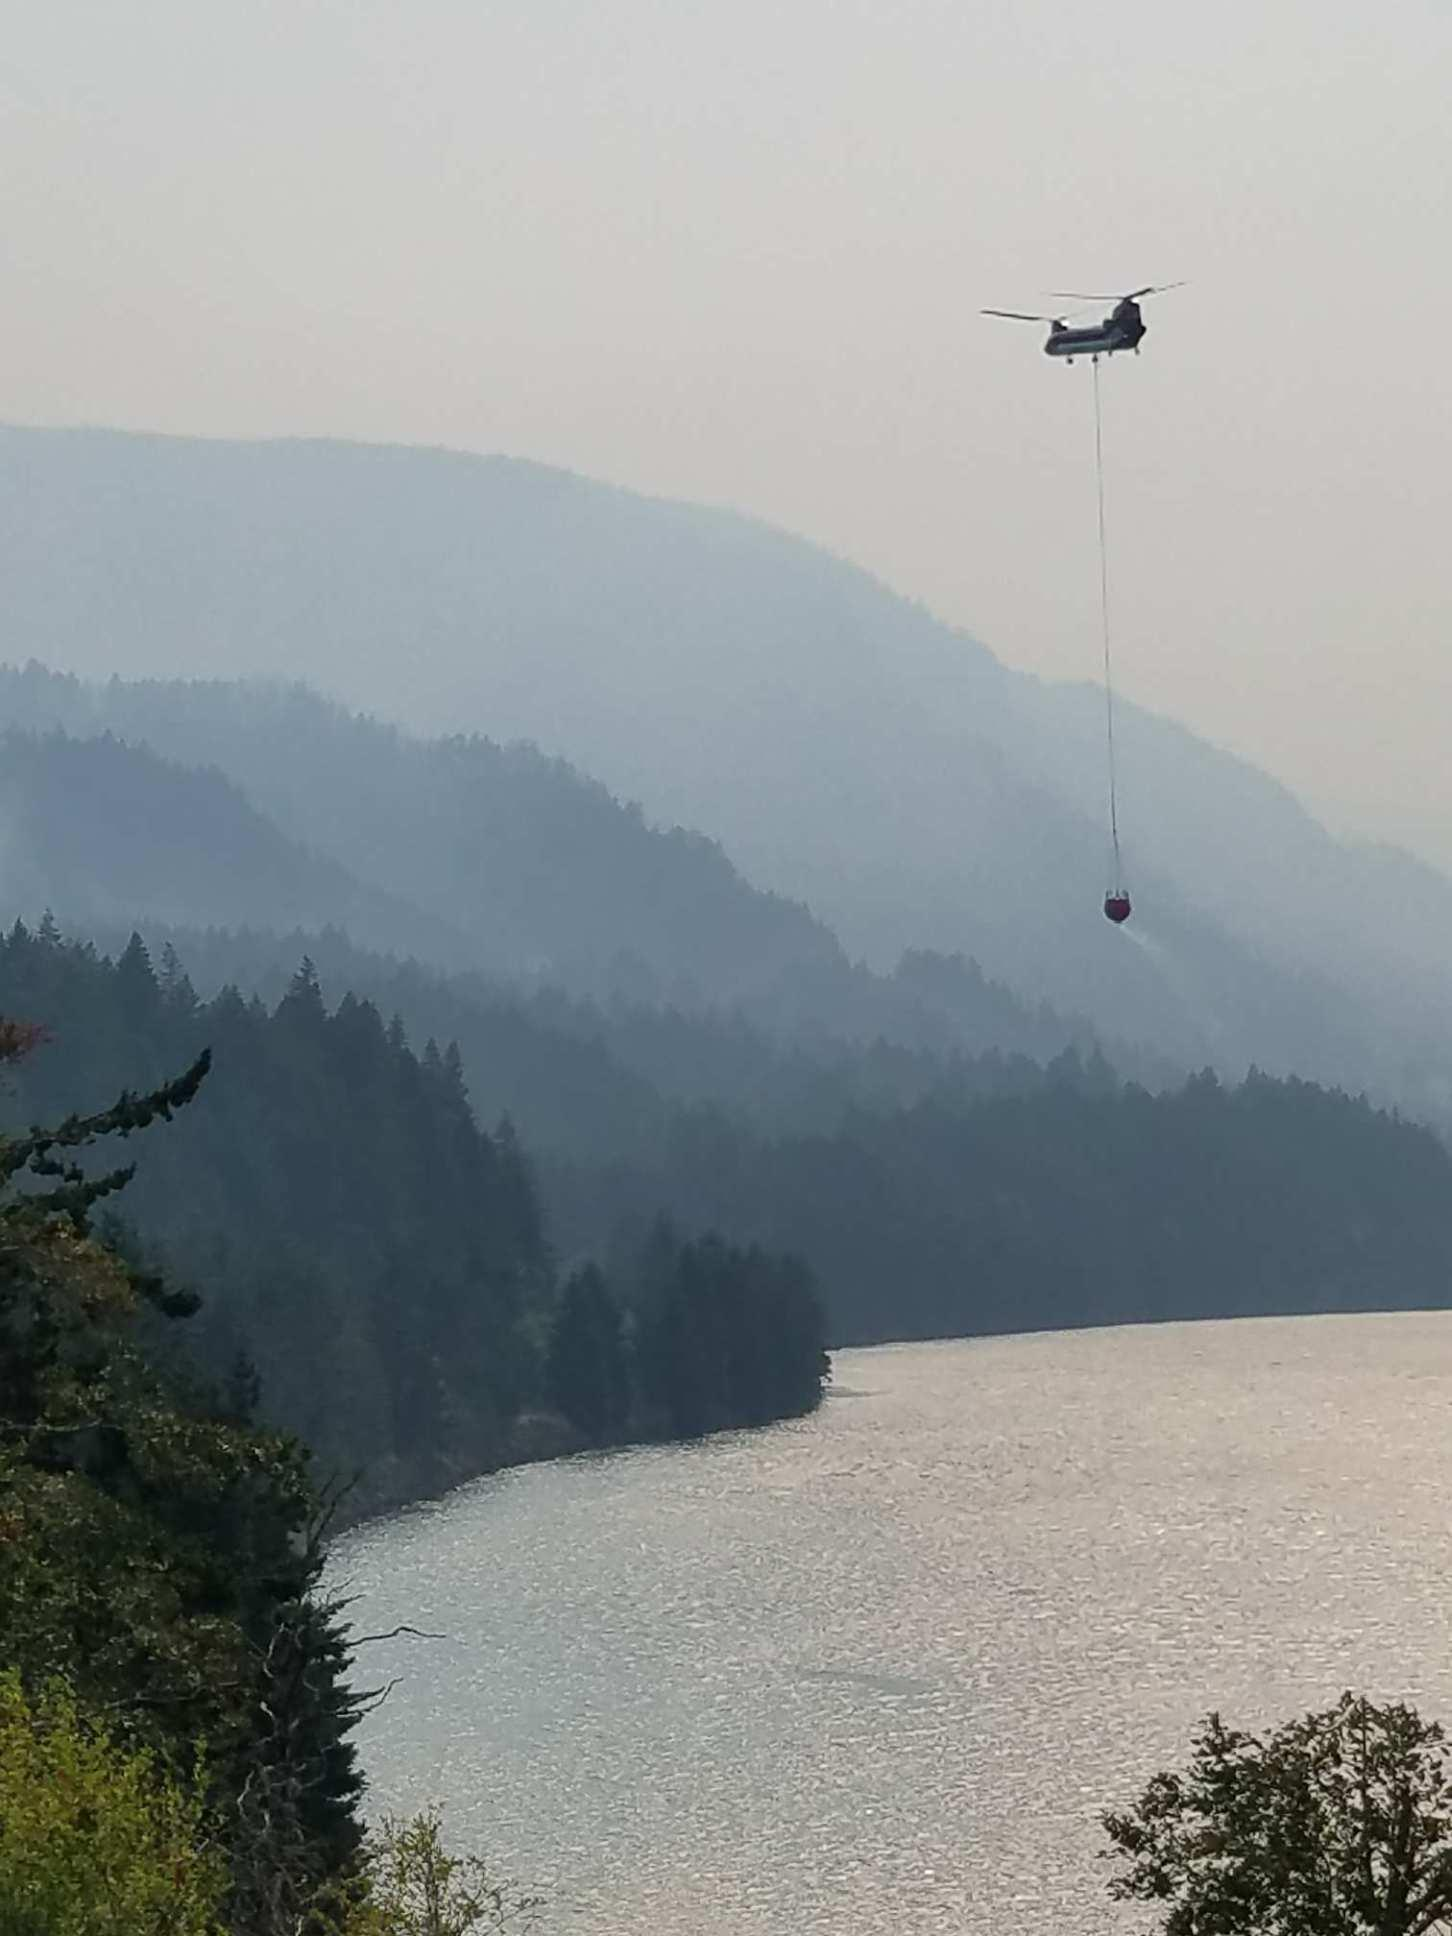 Helicopters get water from the Columbia River to assist firefighters (Photo via inciweb).